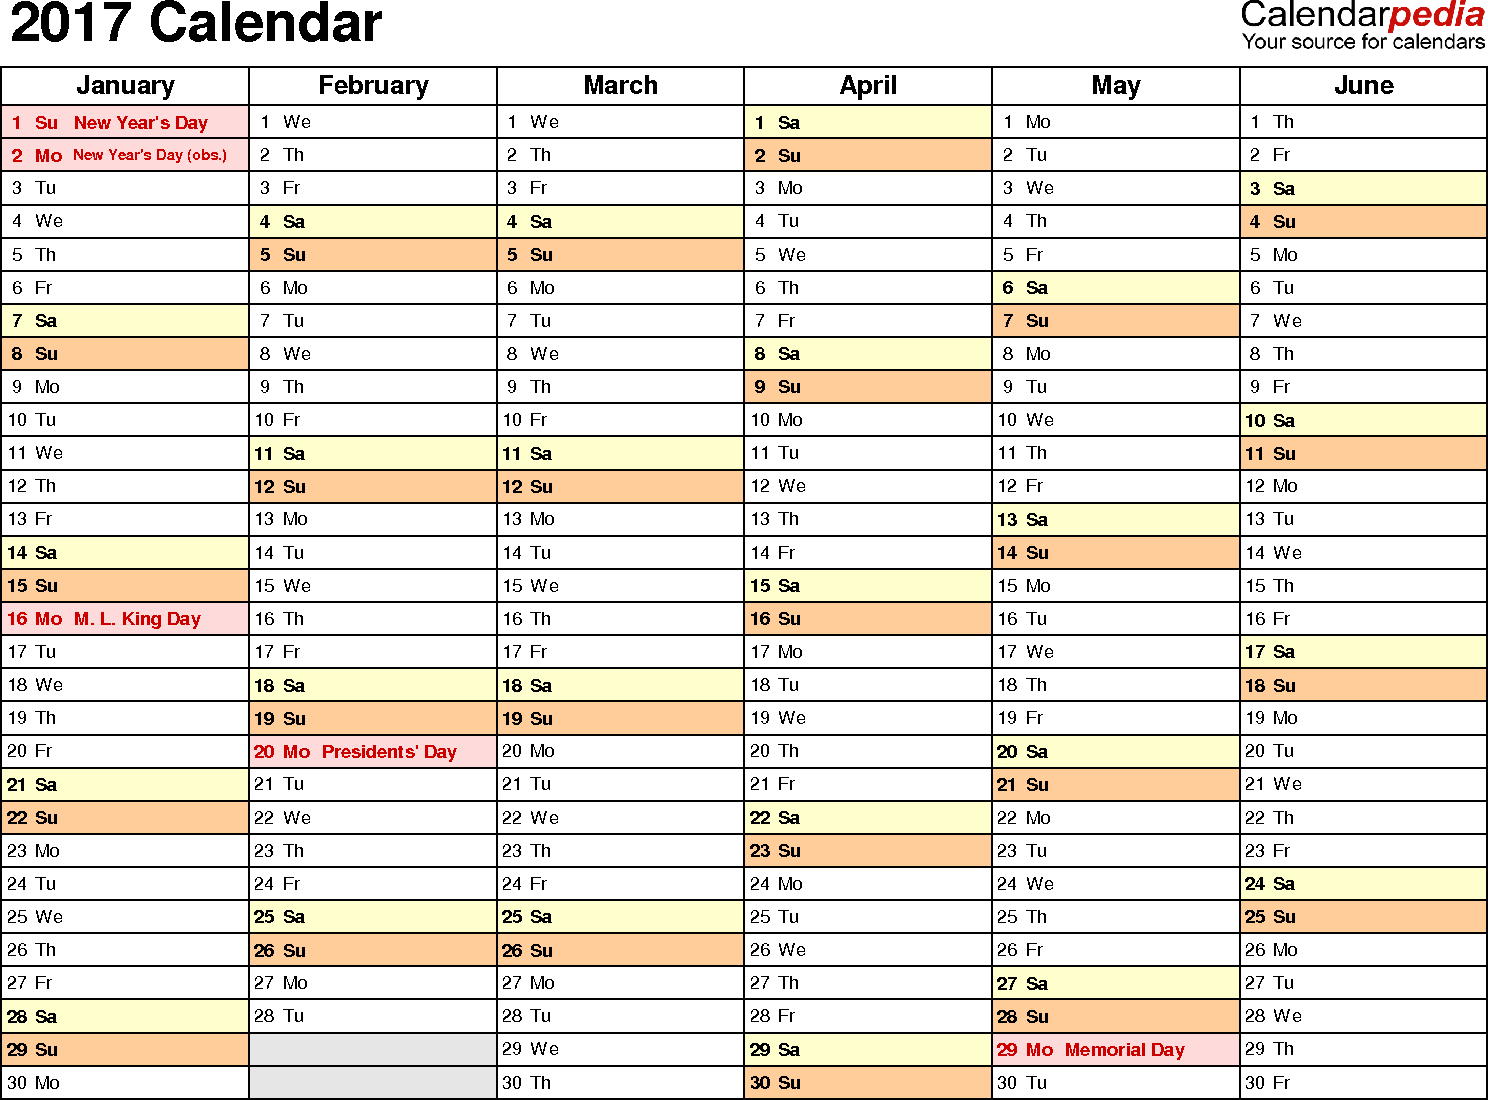 Ediblewildsus  Seductive  Calendar Excel  My Cms With Foxy Template   Calendar For With Appealing Excel Vba Regex Also Microsoft Office Word Excel  Free Download Full Version In Addition Microsoft Excel Tasks And Mode Function In Excel As Well As Excel Crossword Additionally Pdf To Excel Sheet Converter Online From Abefendicafecom With Ediblewildsus  Foxy  Calendar Excel  My Cms With Appealing Template   Calendar For And Seductive Excel Vba Regex Also Microsoft Office Word Excel  Free Download Full Version In Addition Microsoft Excel Tasks From Abefendicafecom